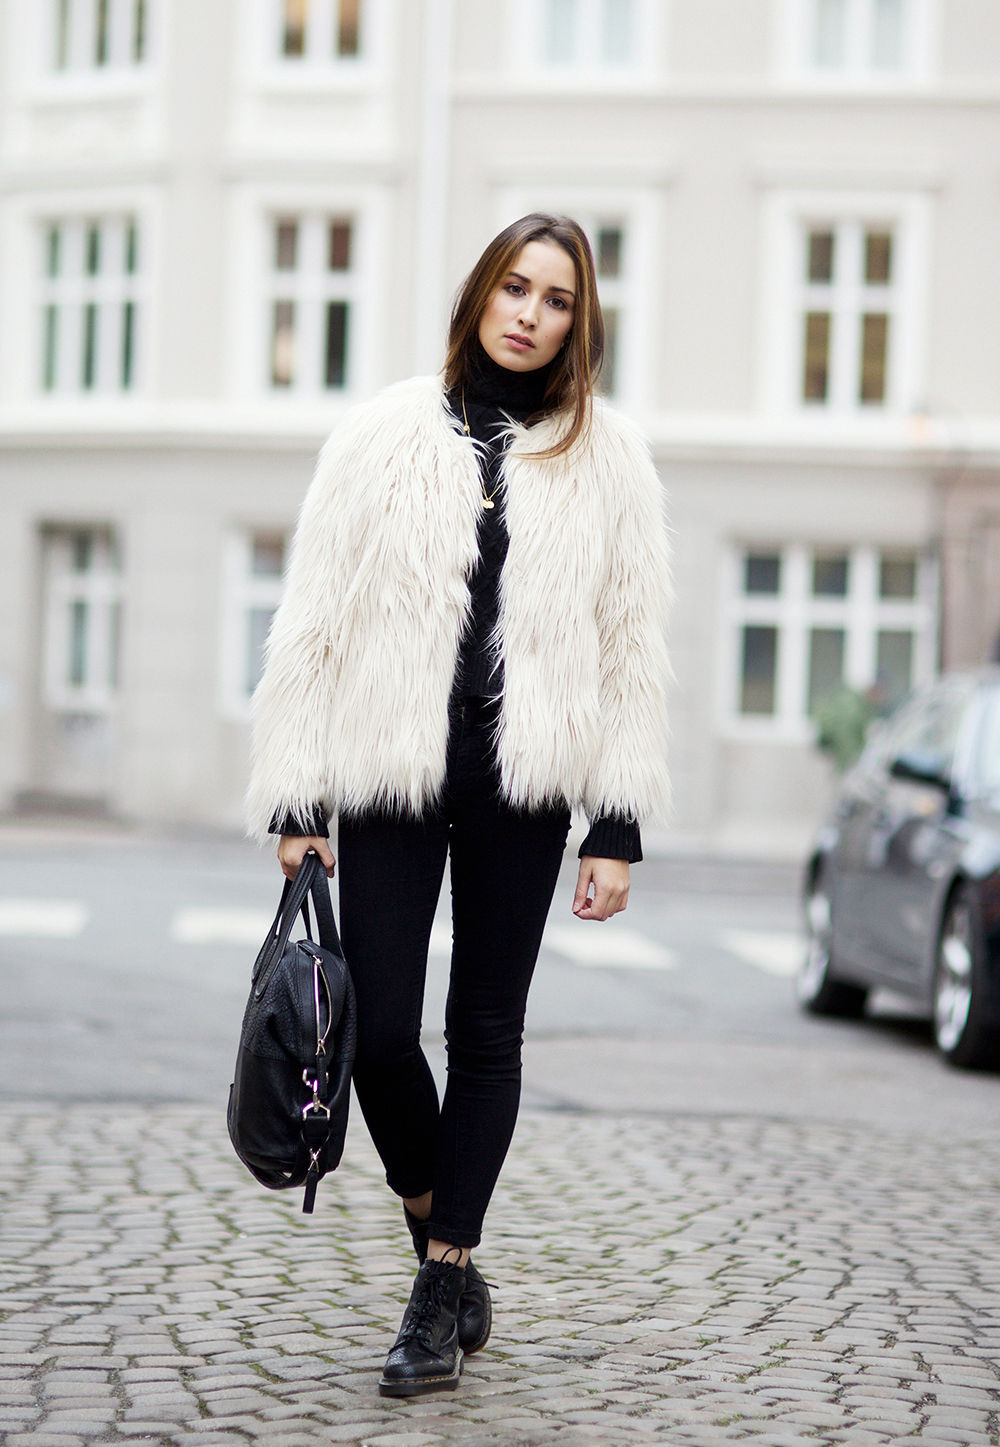 Ingrid Holm is wearing a white shaggy jacket from Lindex